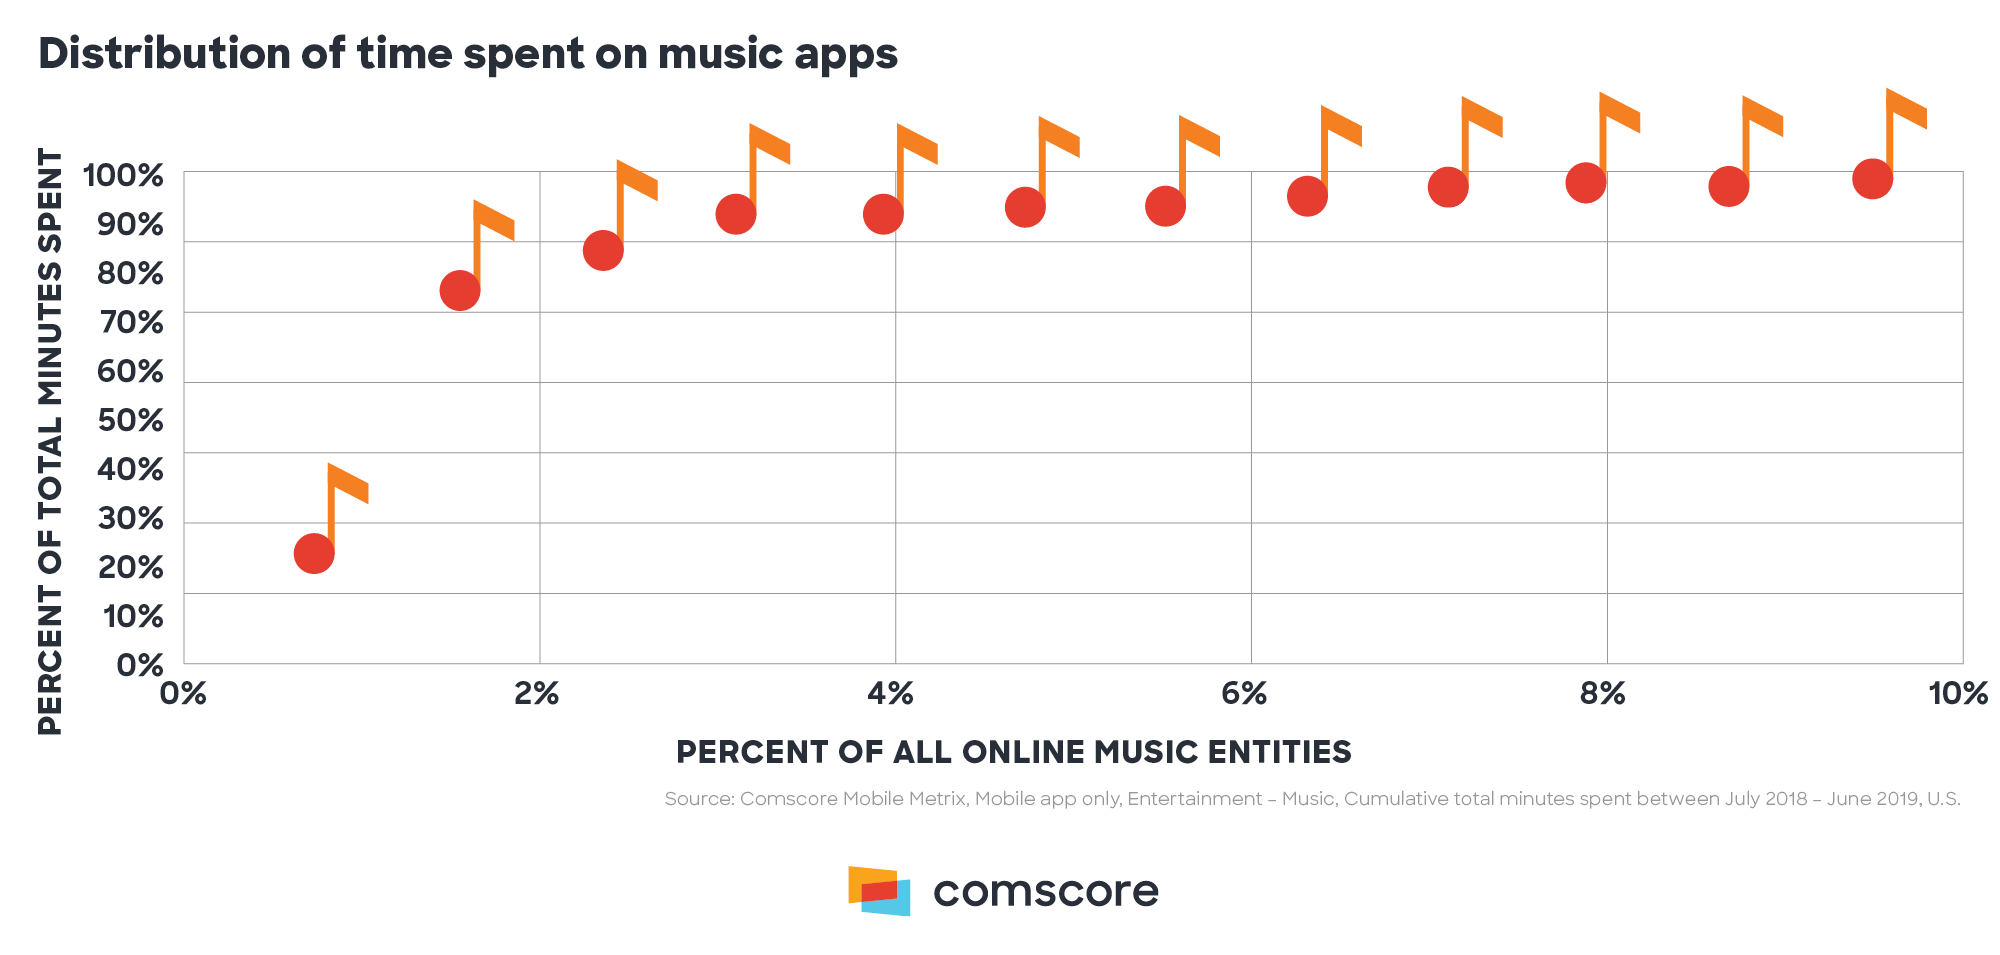 Distribution of Time Spent on Music Apps